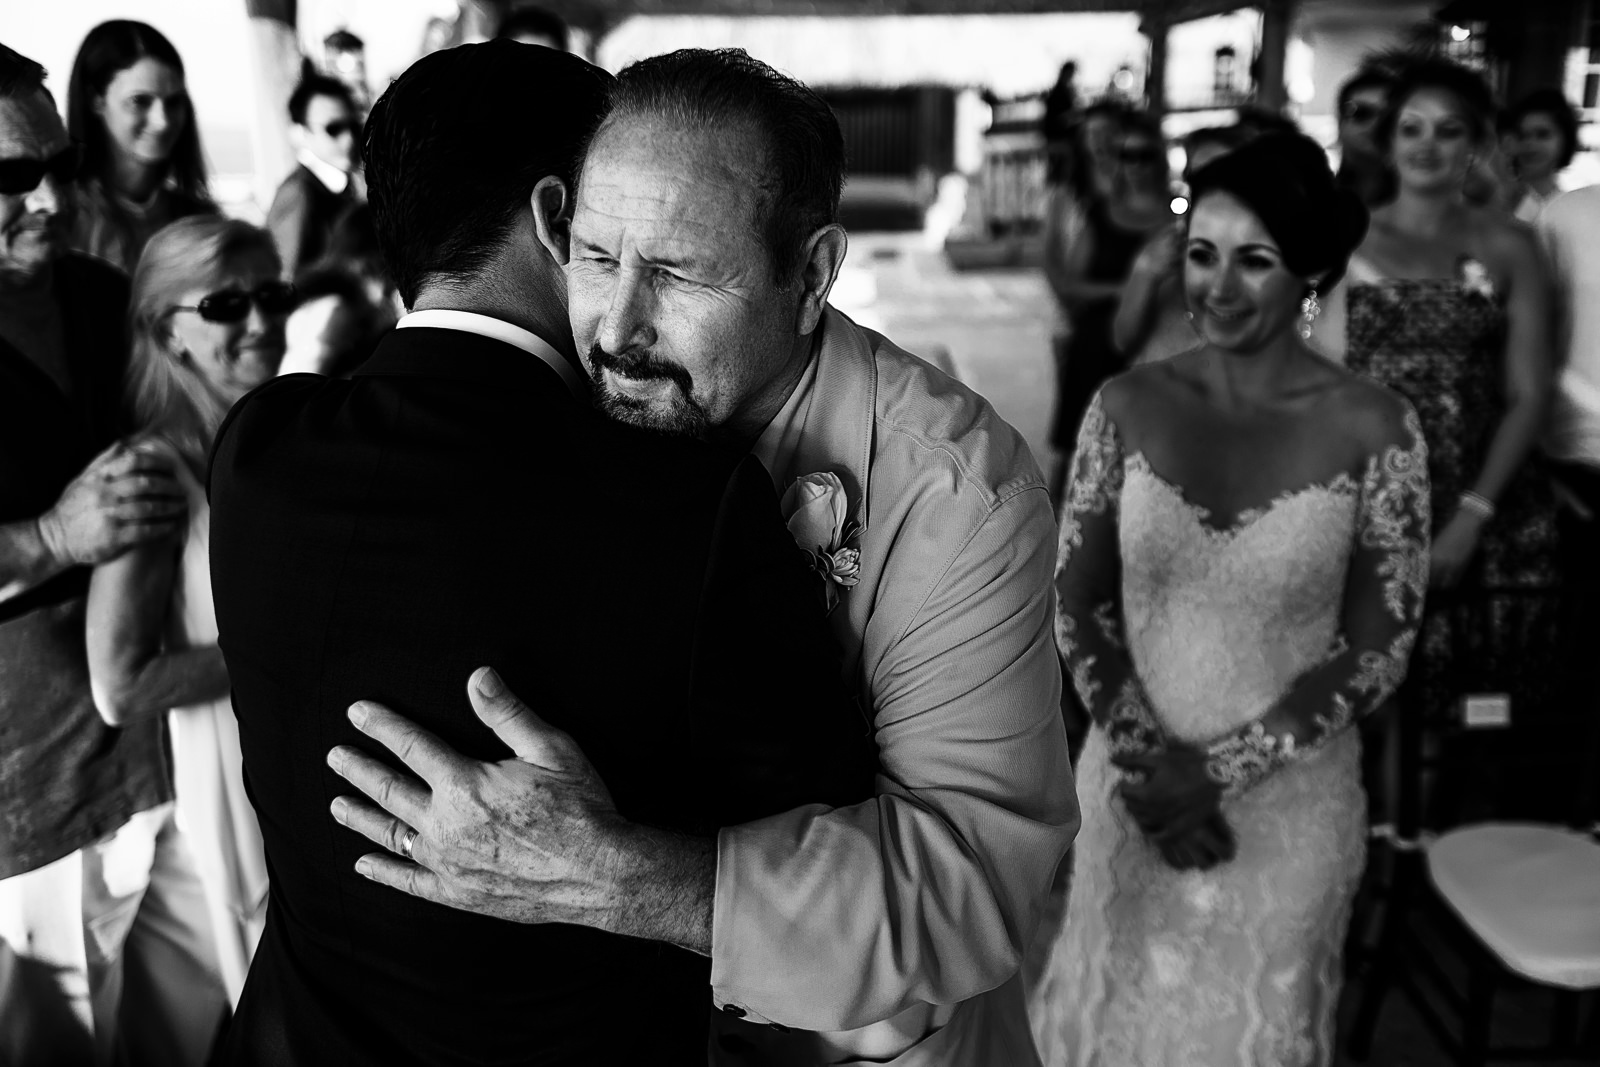 Father of the bride hugging the groom at the altar